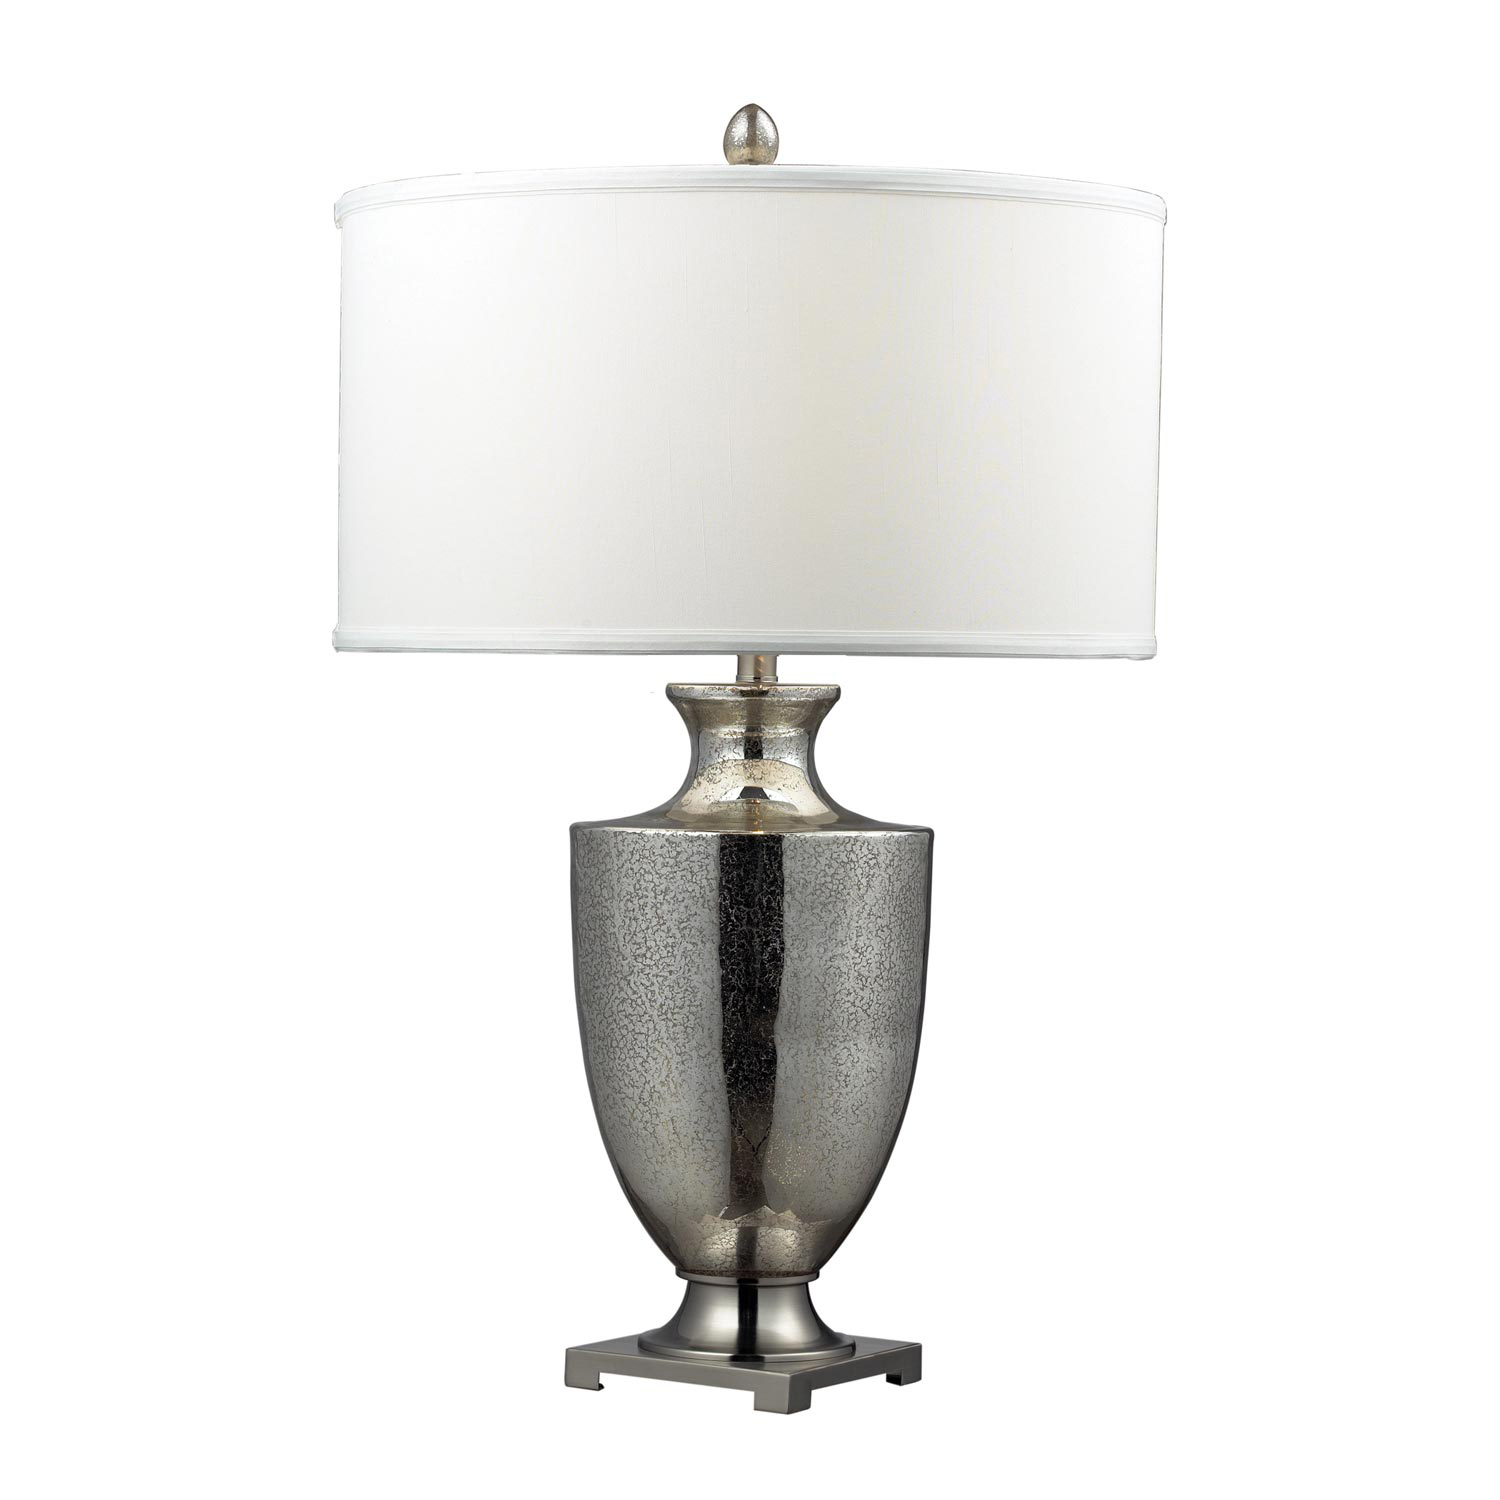 Elk Lighting D2248W Langham Table Lamp - Antique Mercury Glass with Polished Chrome